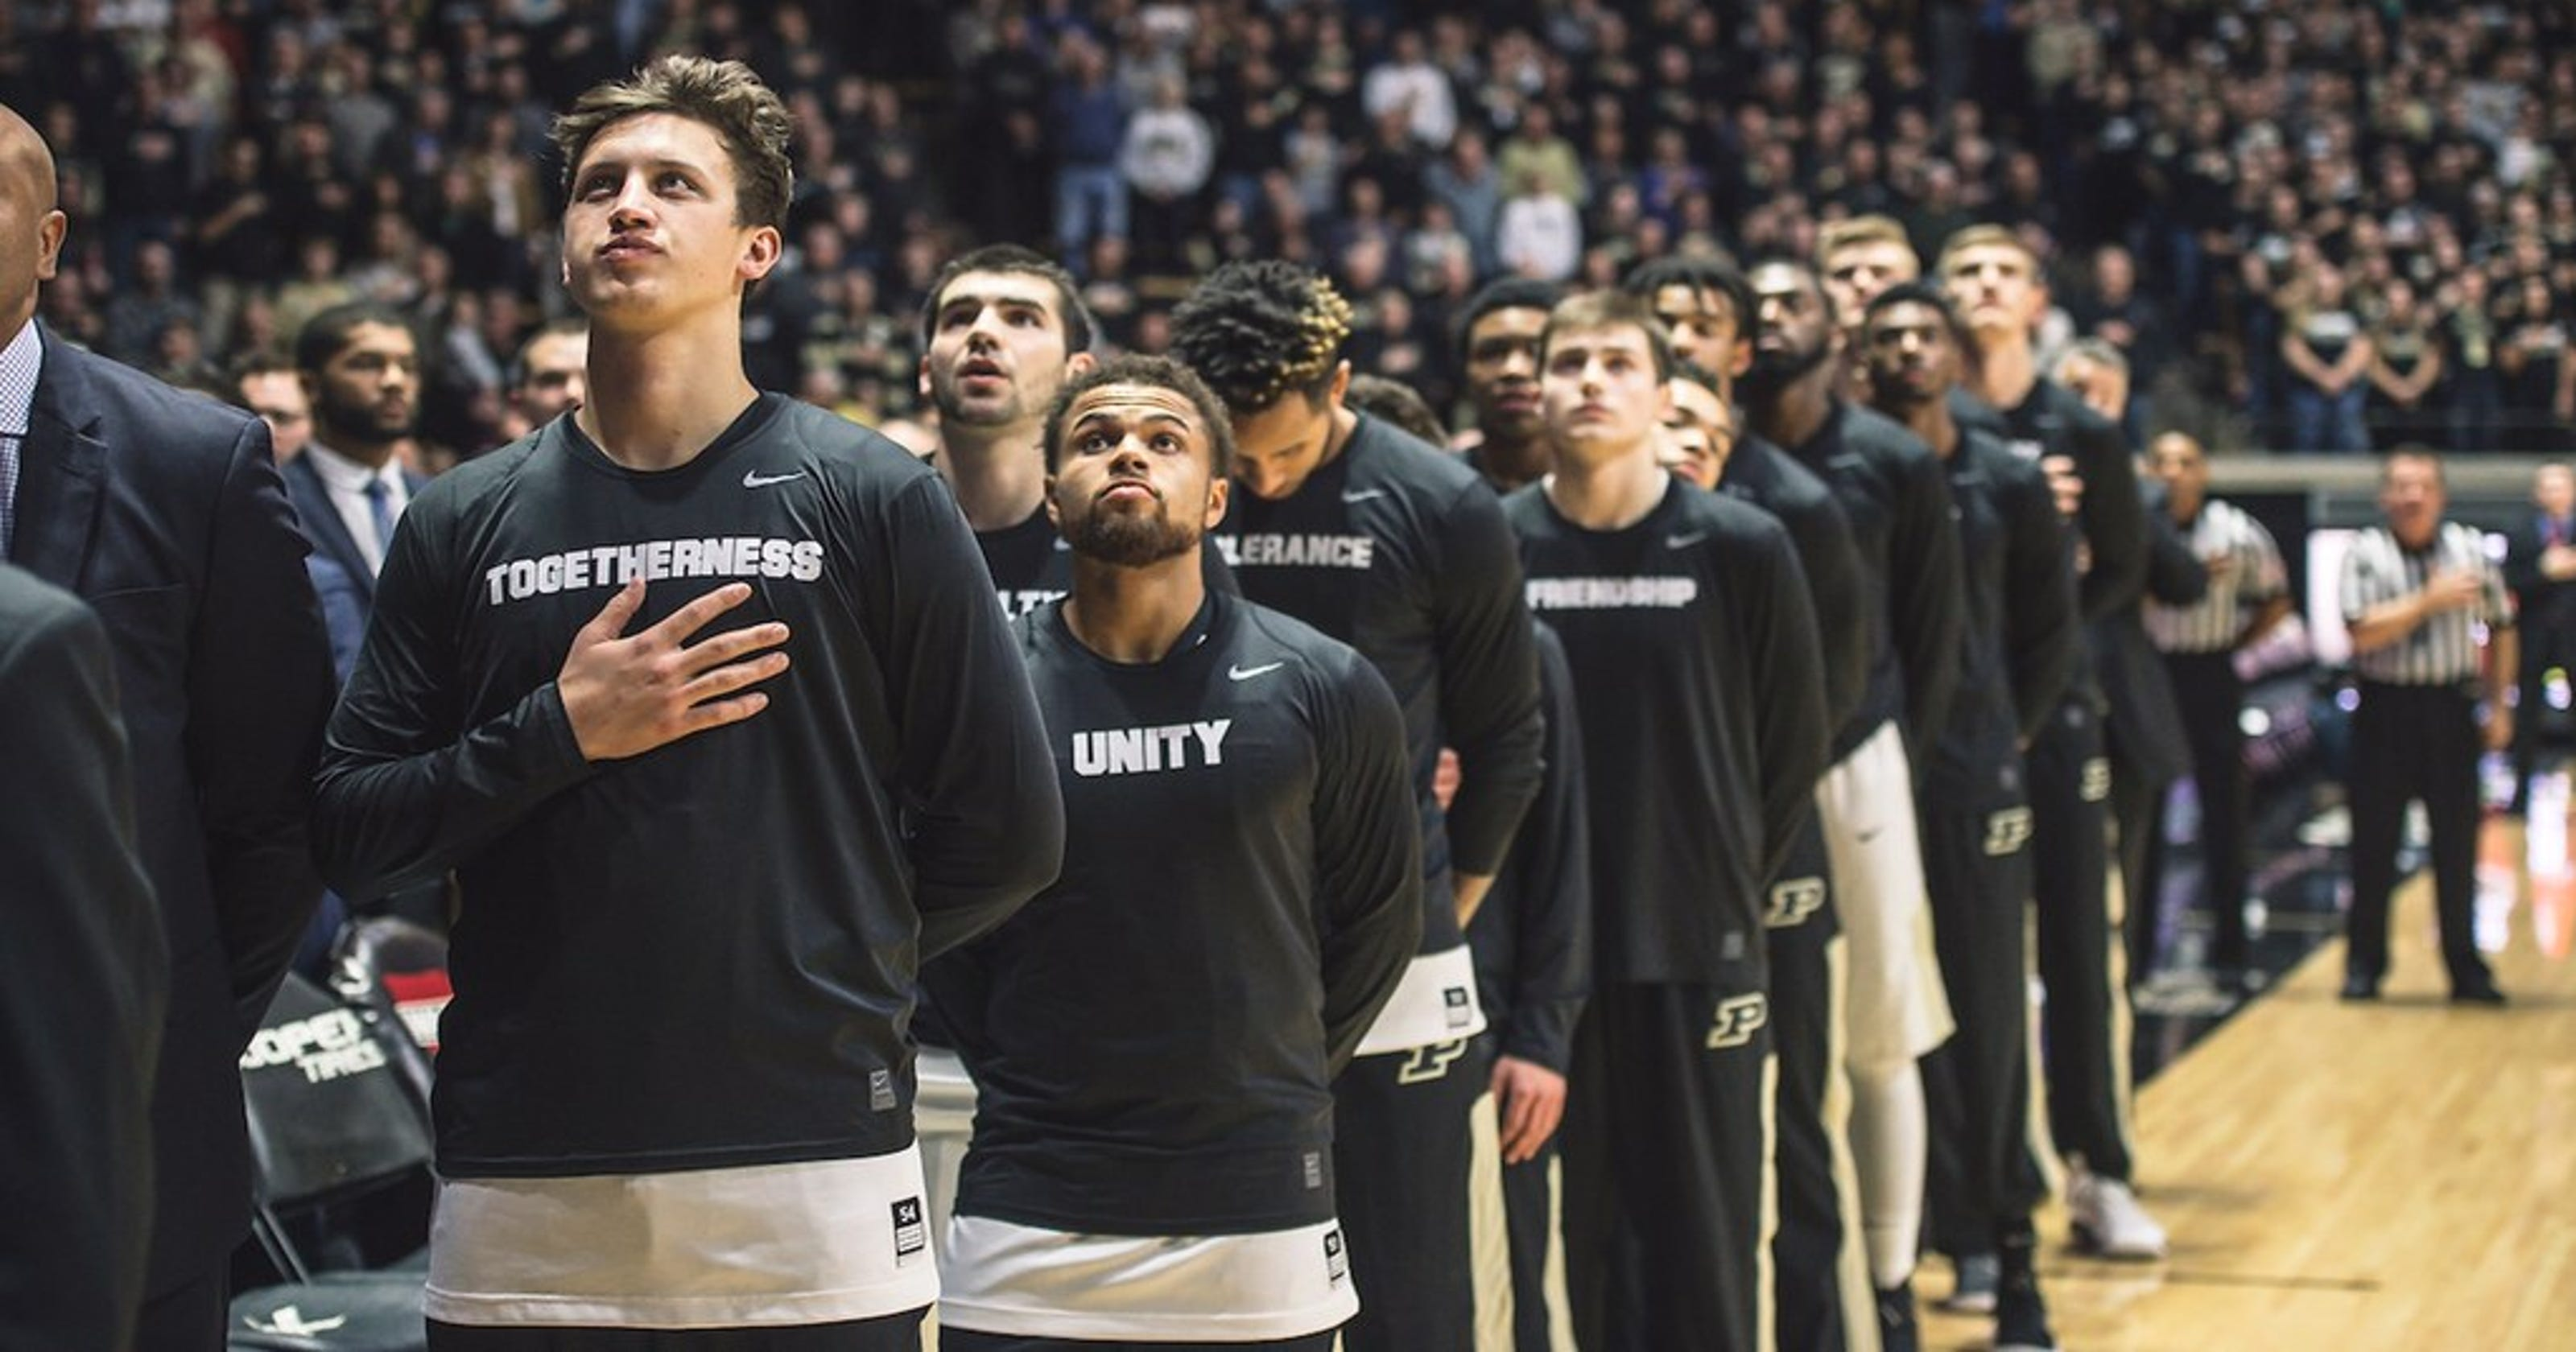 Purdue Basketball Players Send Message Of Unity With Shooting Shirts